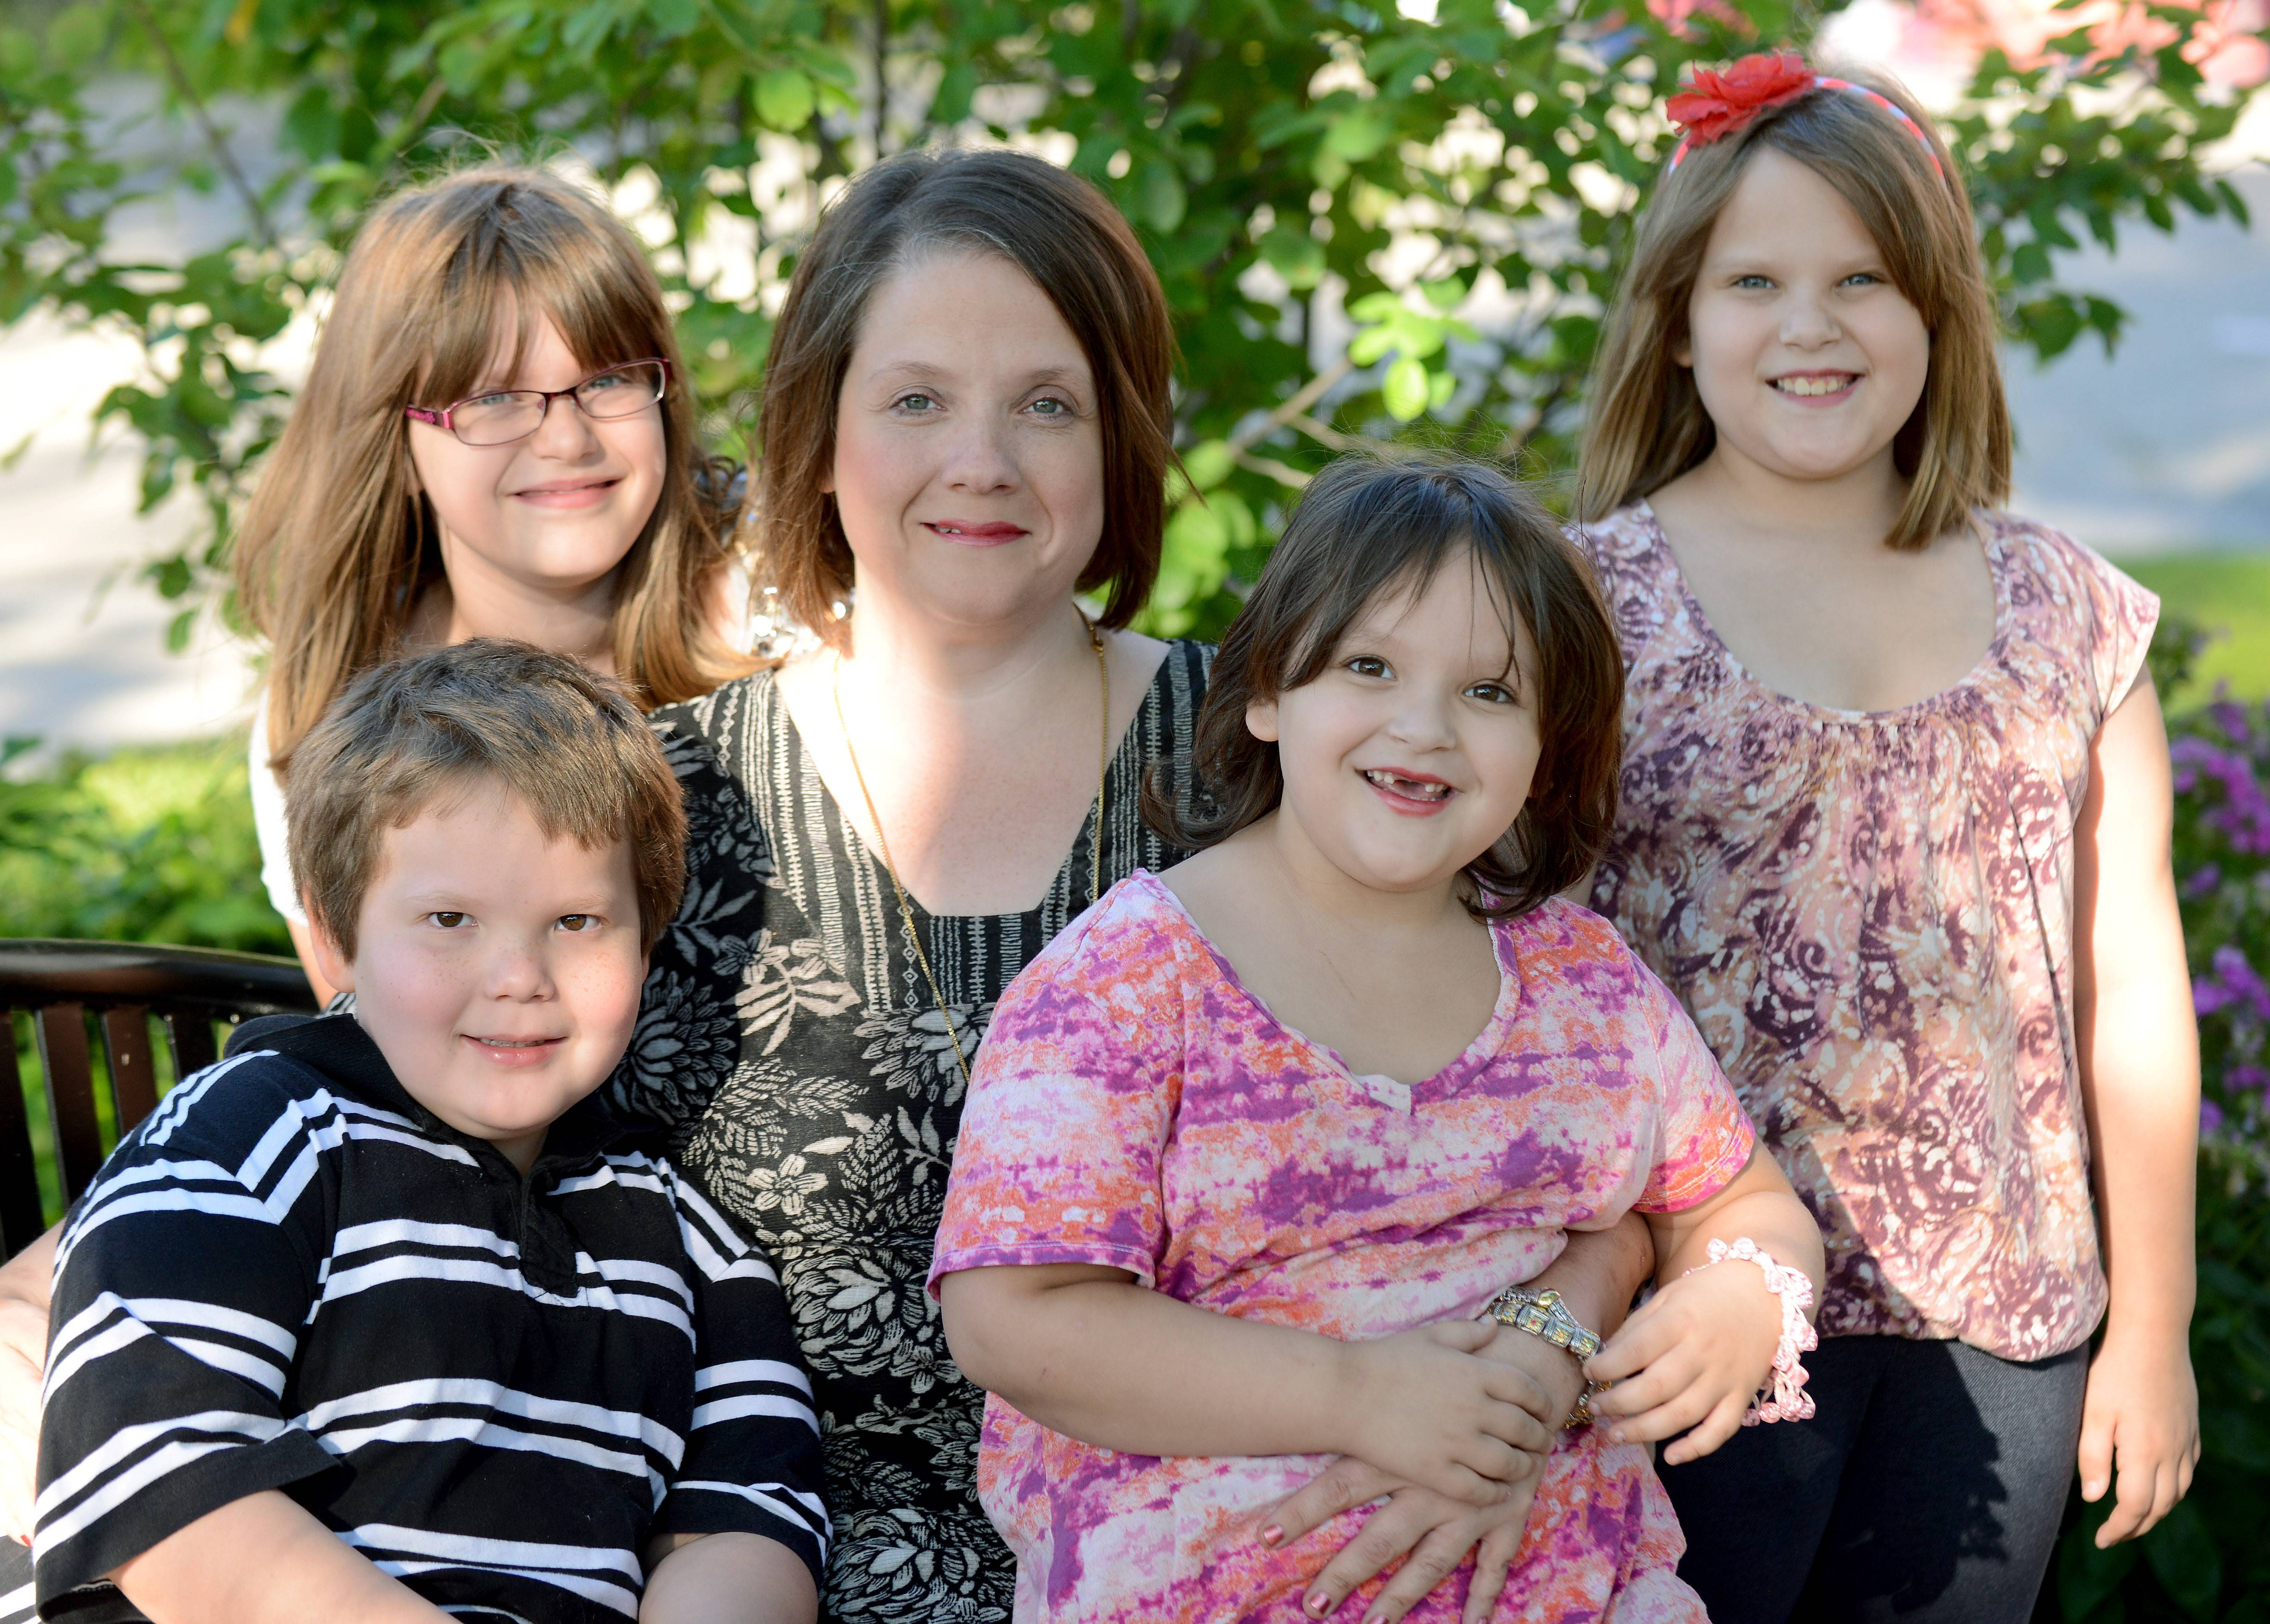 Stacey Schnaitman of Geneva is seeking financial help via GoFundMe to get a divorce from her husband, who is awaiting trial on domestic abuse charges in the Kane County jail. She is shown with her children, front row, left to right: JJ, 7; Aslyn, 5. Back row, left to right: Greer, 10; Cheyenne, 9.